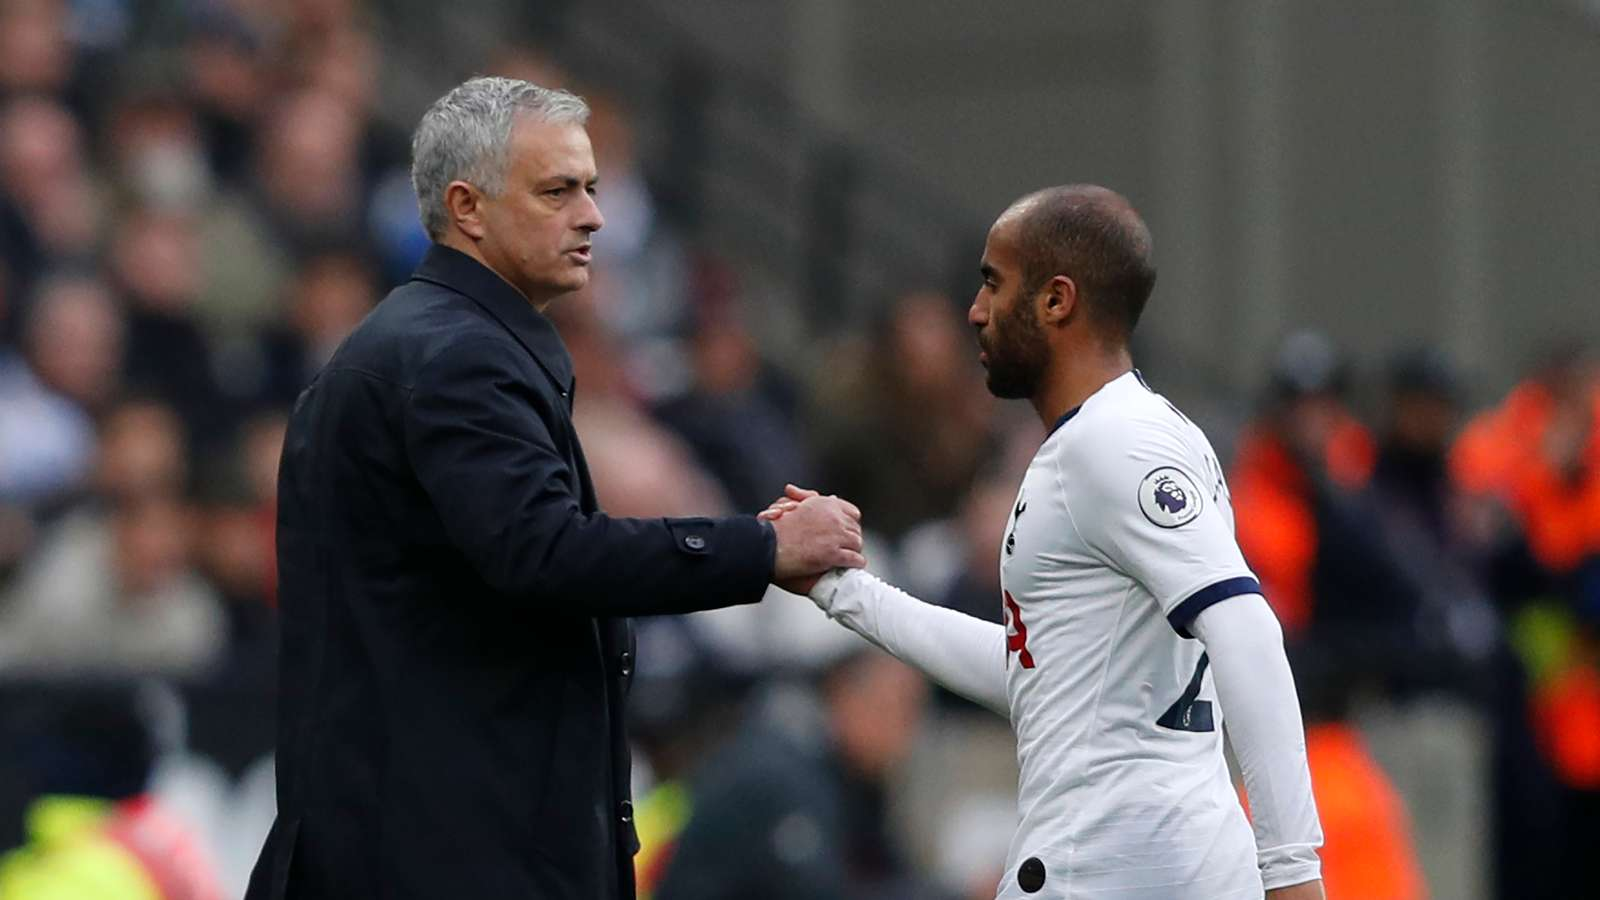 Tottenham can win a trophy now with Mourinho - Moura - Bóng Đá